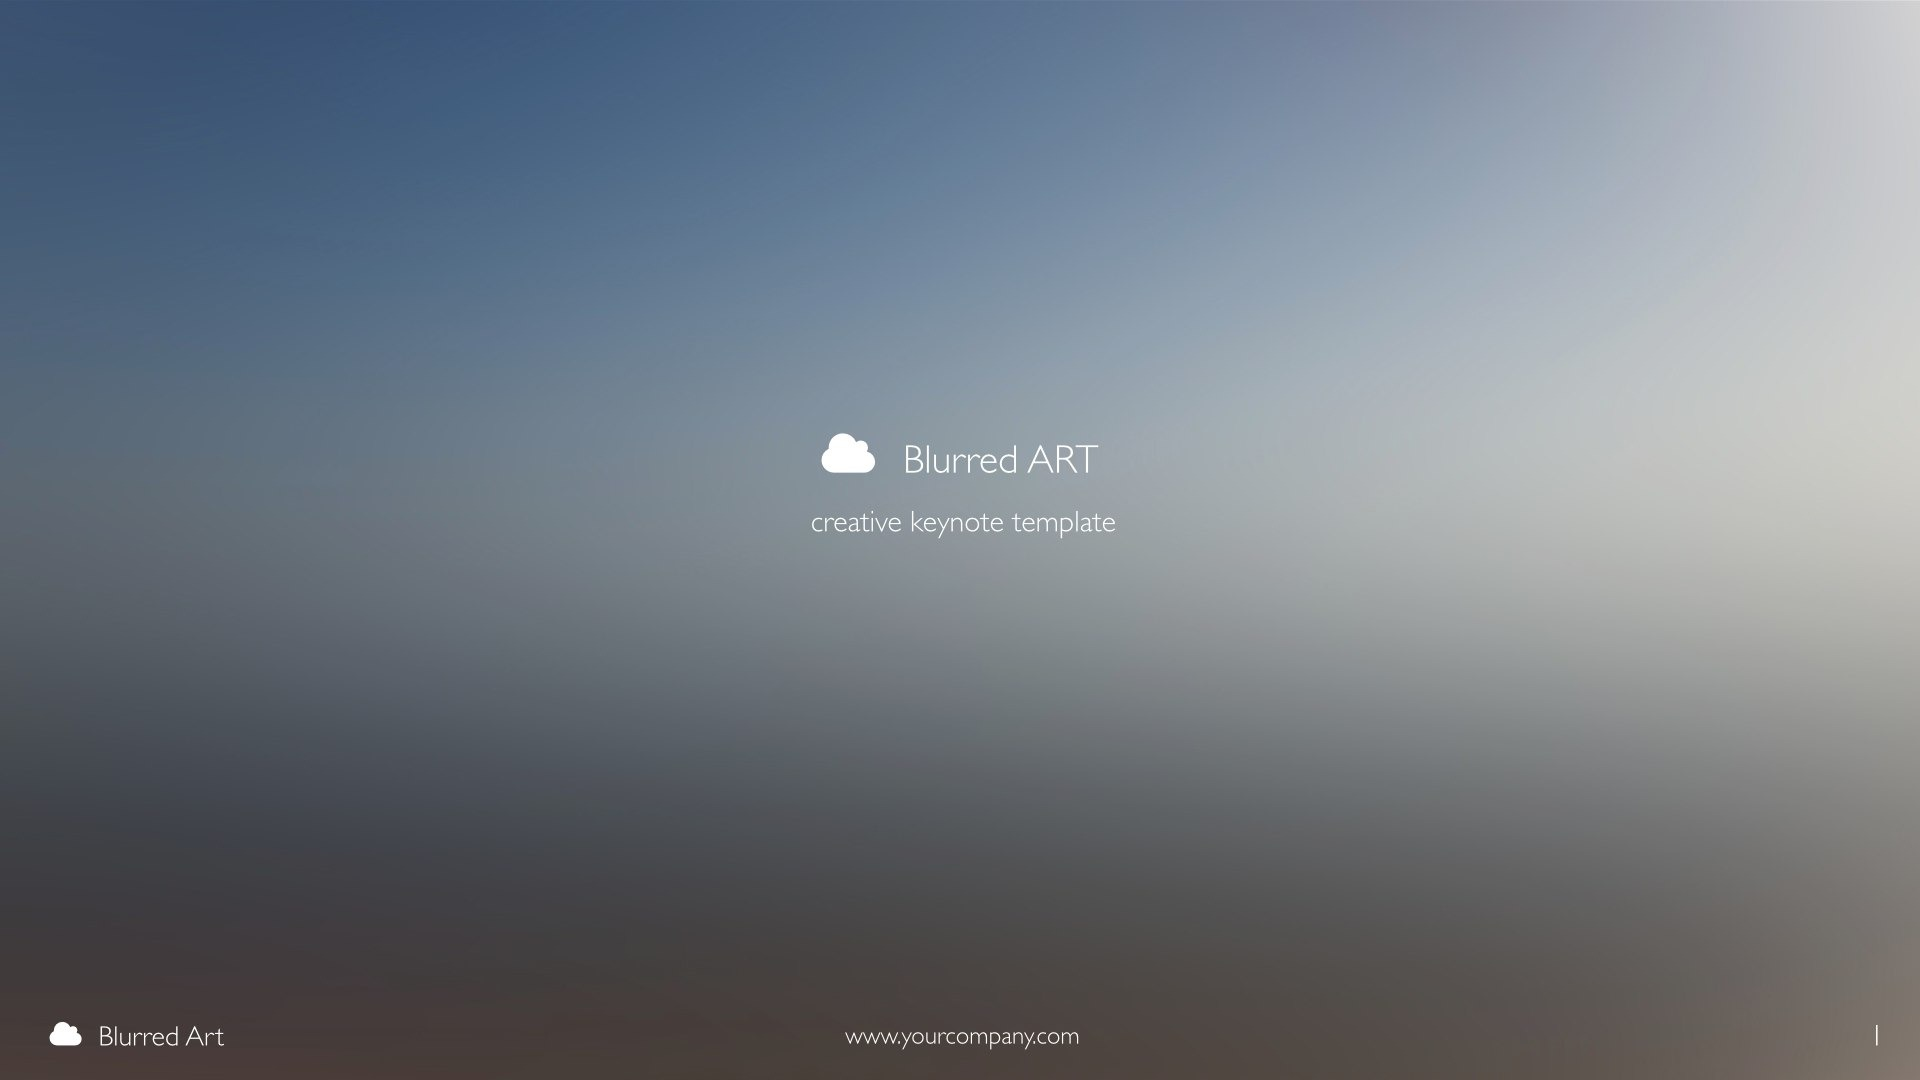 Blurred Art - Creative Keynote Template